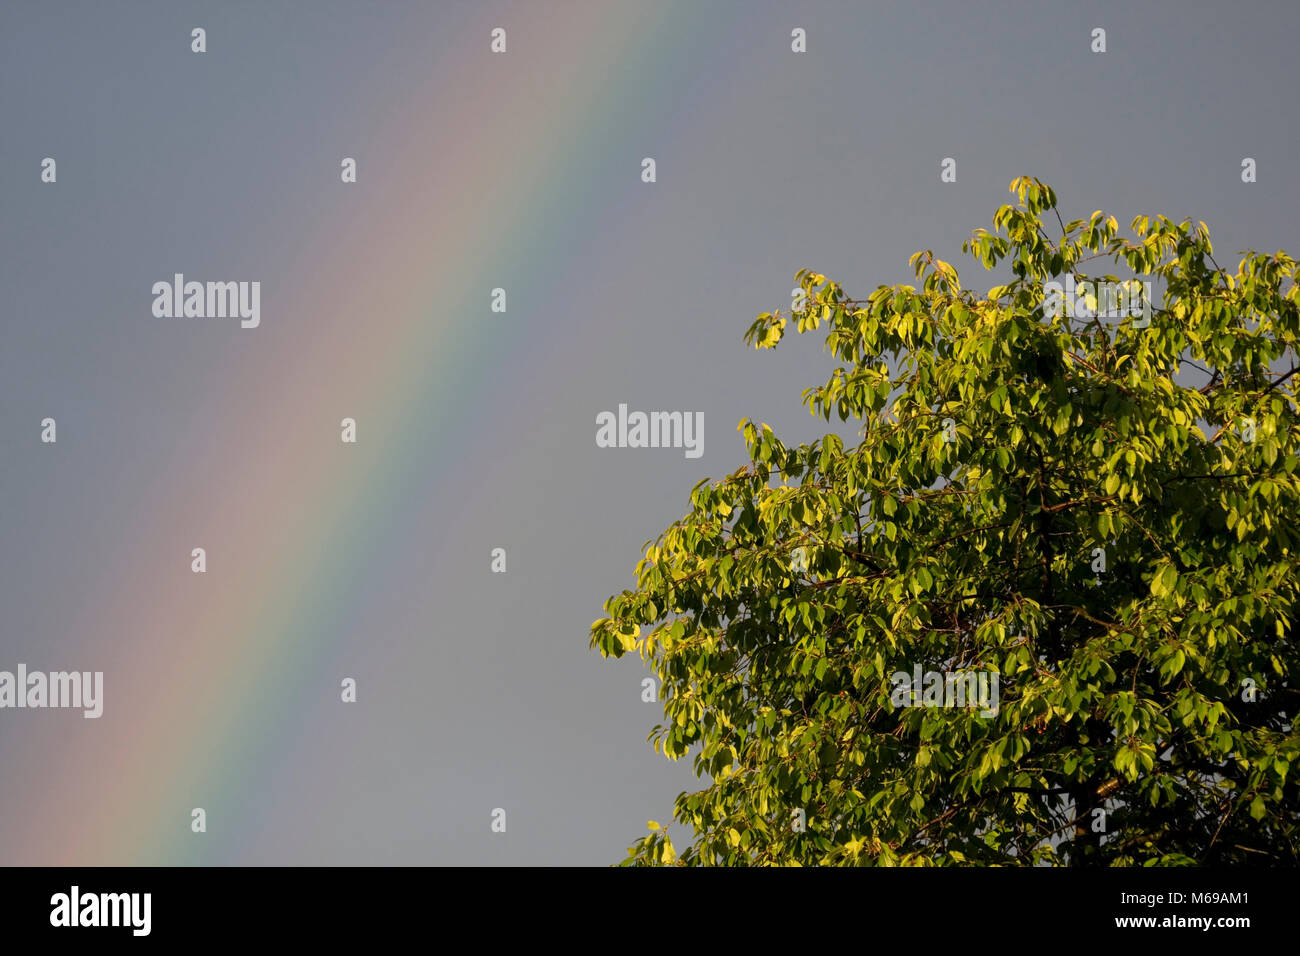 Treetop bathed in sunlight with rainbow in the background, London, July 2016 - Stock Image